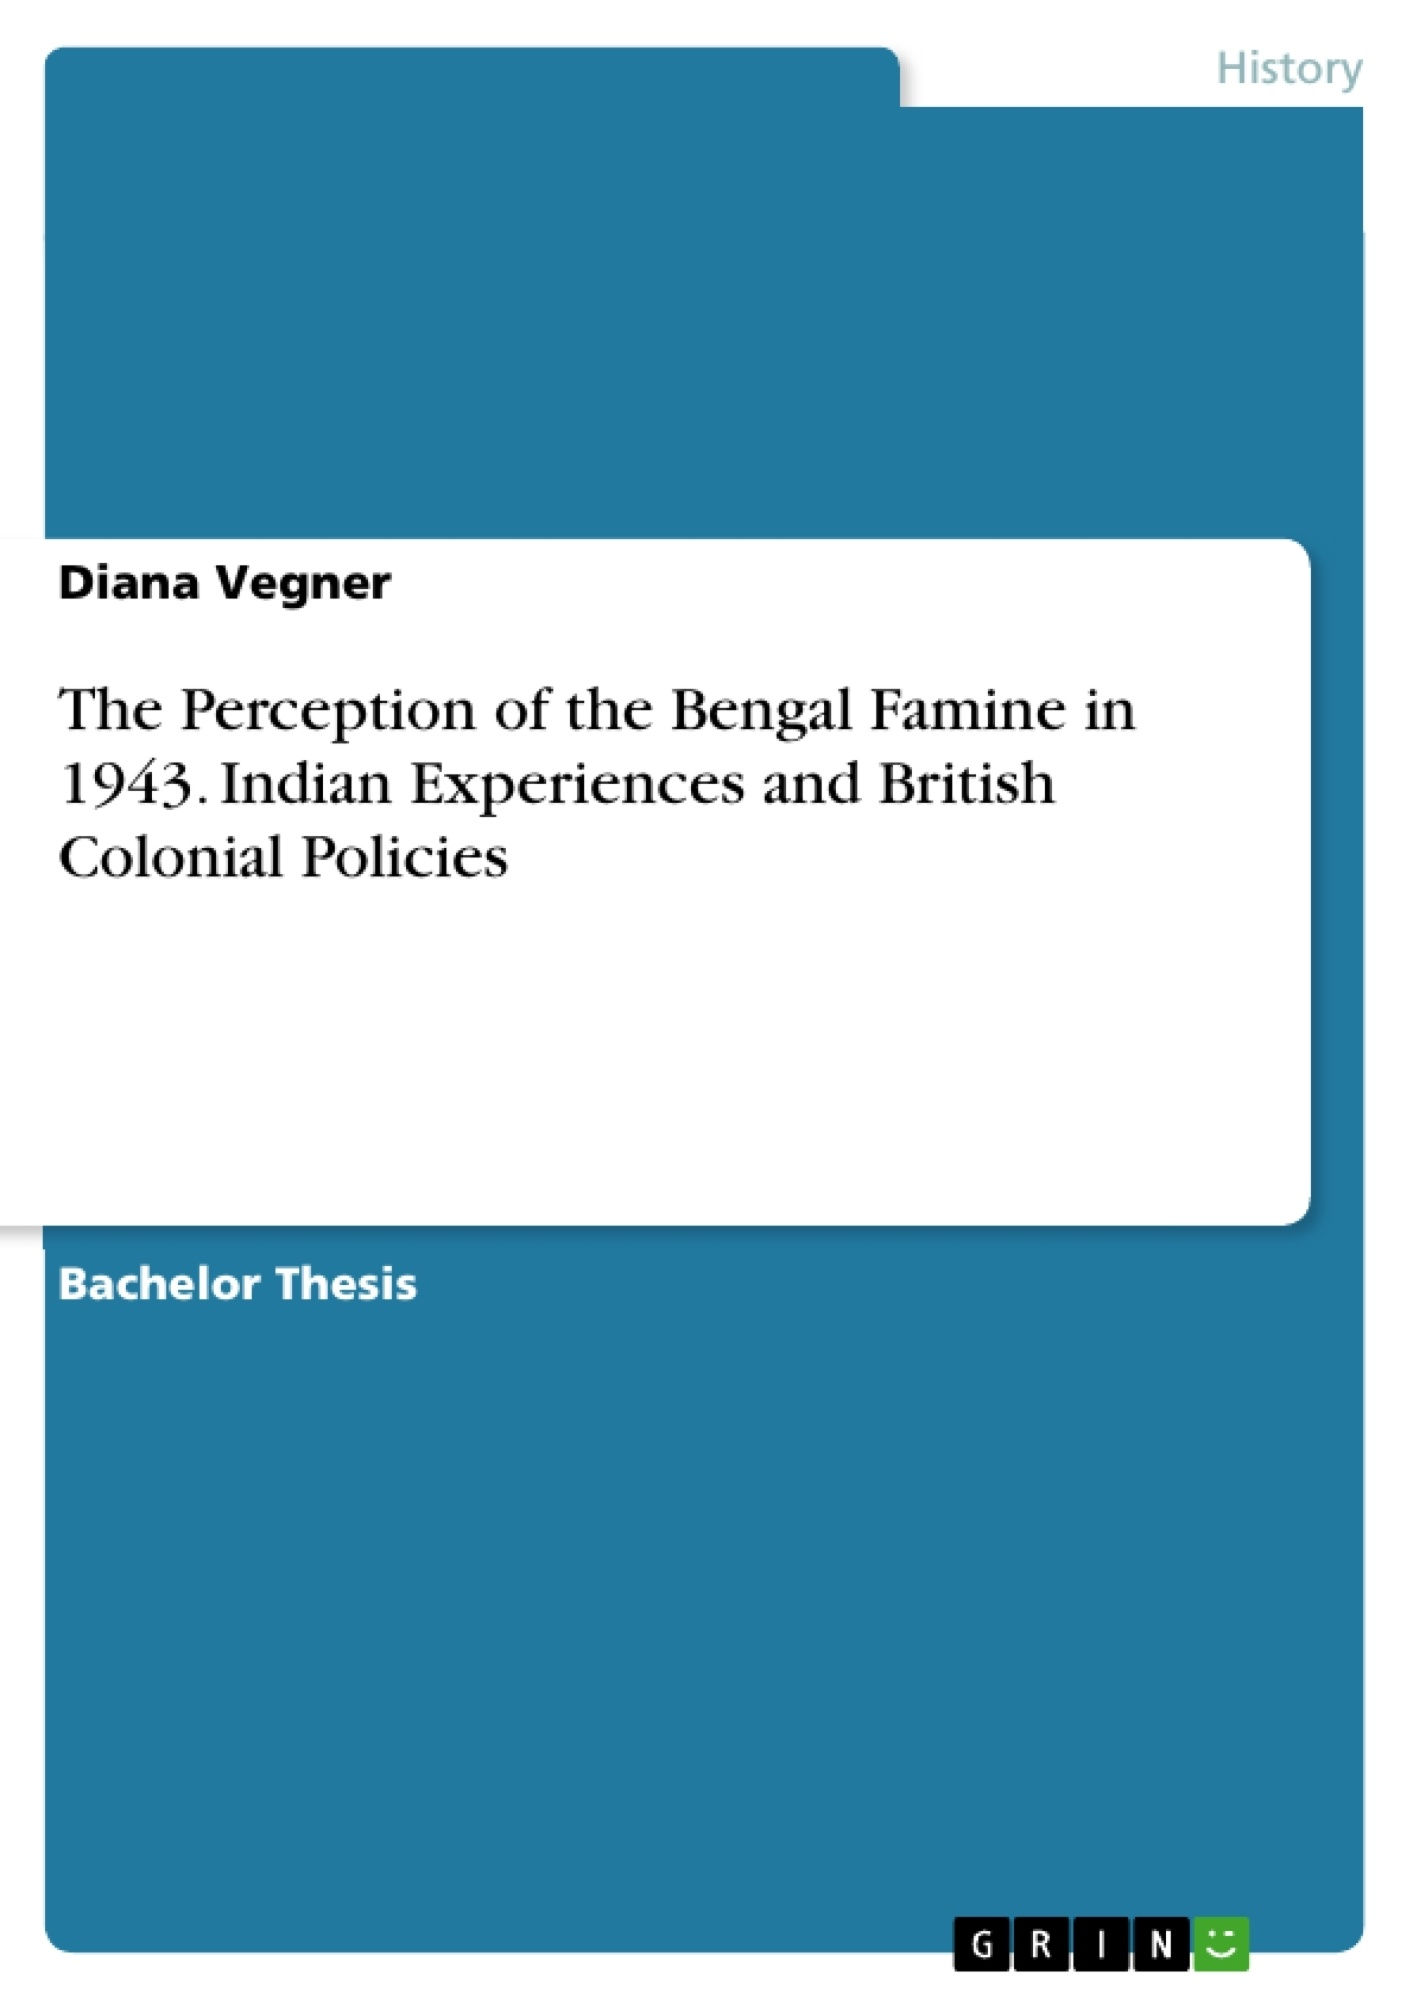 Title: The Perception of the Bengal Famine in 1943. Indian Experiences and British Colonial Policies